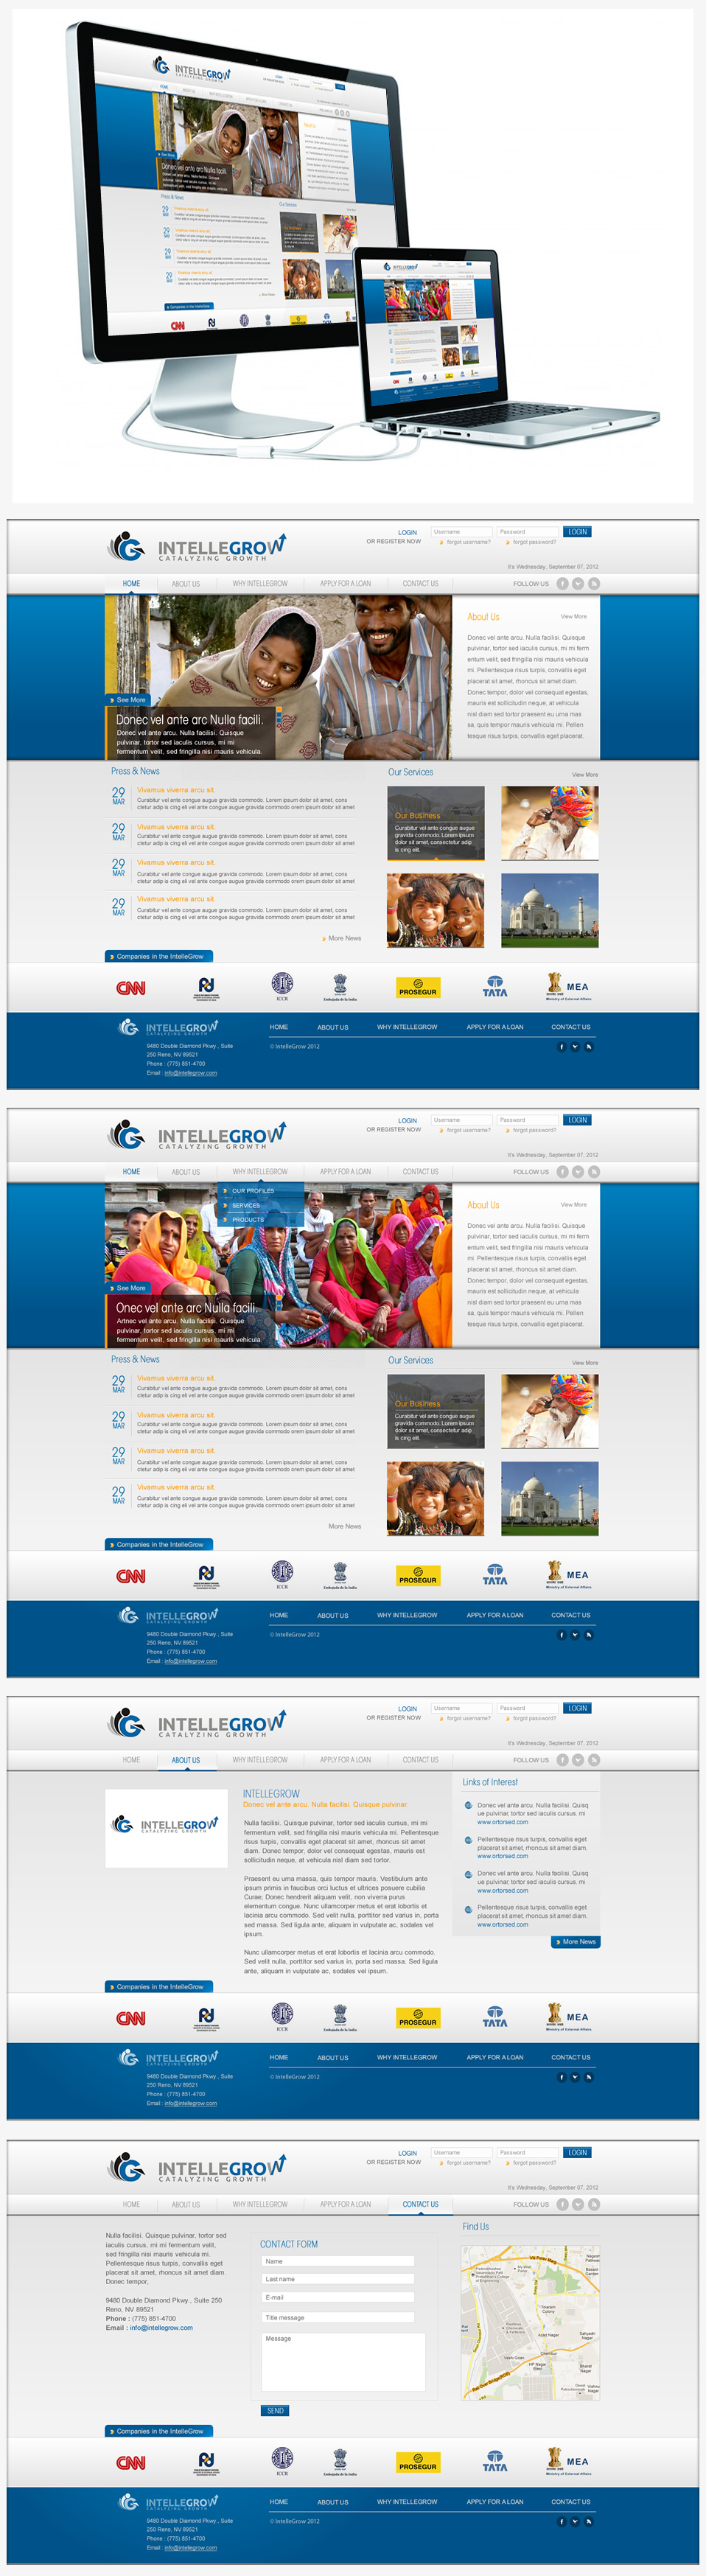 Web Page Design by Juma Studio - Entry No. 21 in the Web Page Design Contest IntelleGrow Finance Web Page Design.